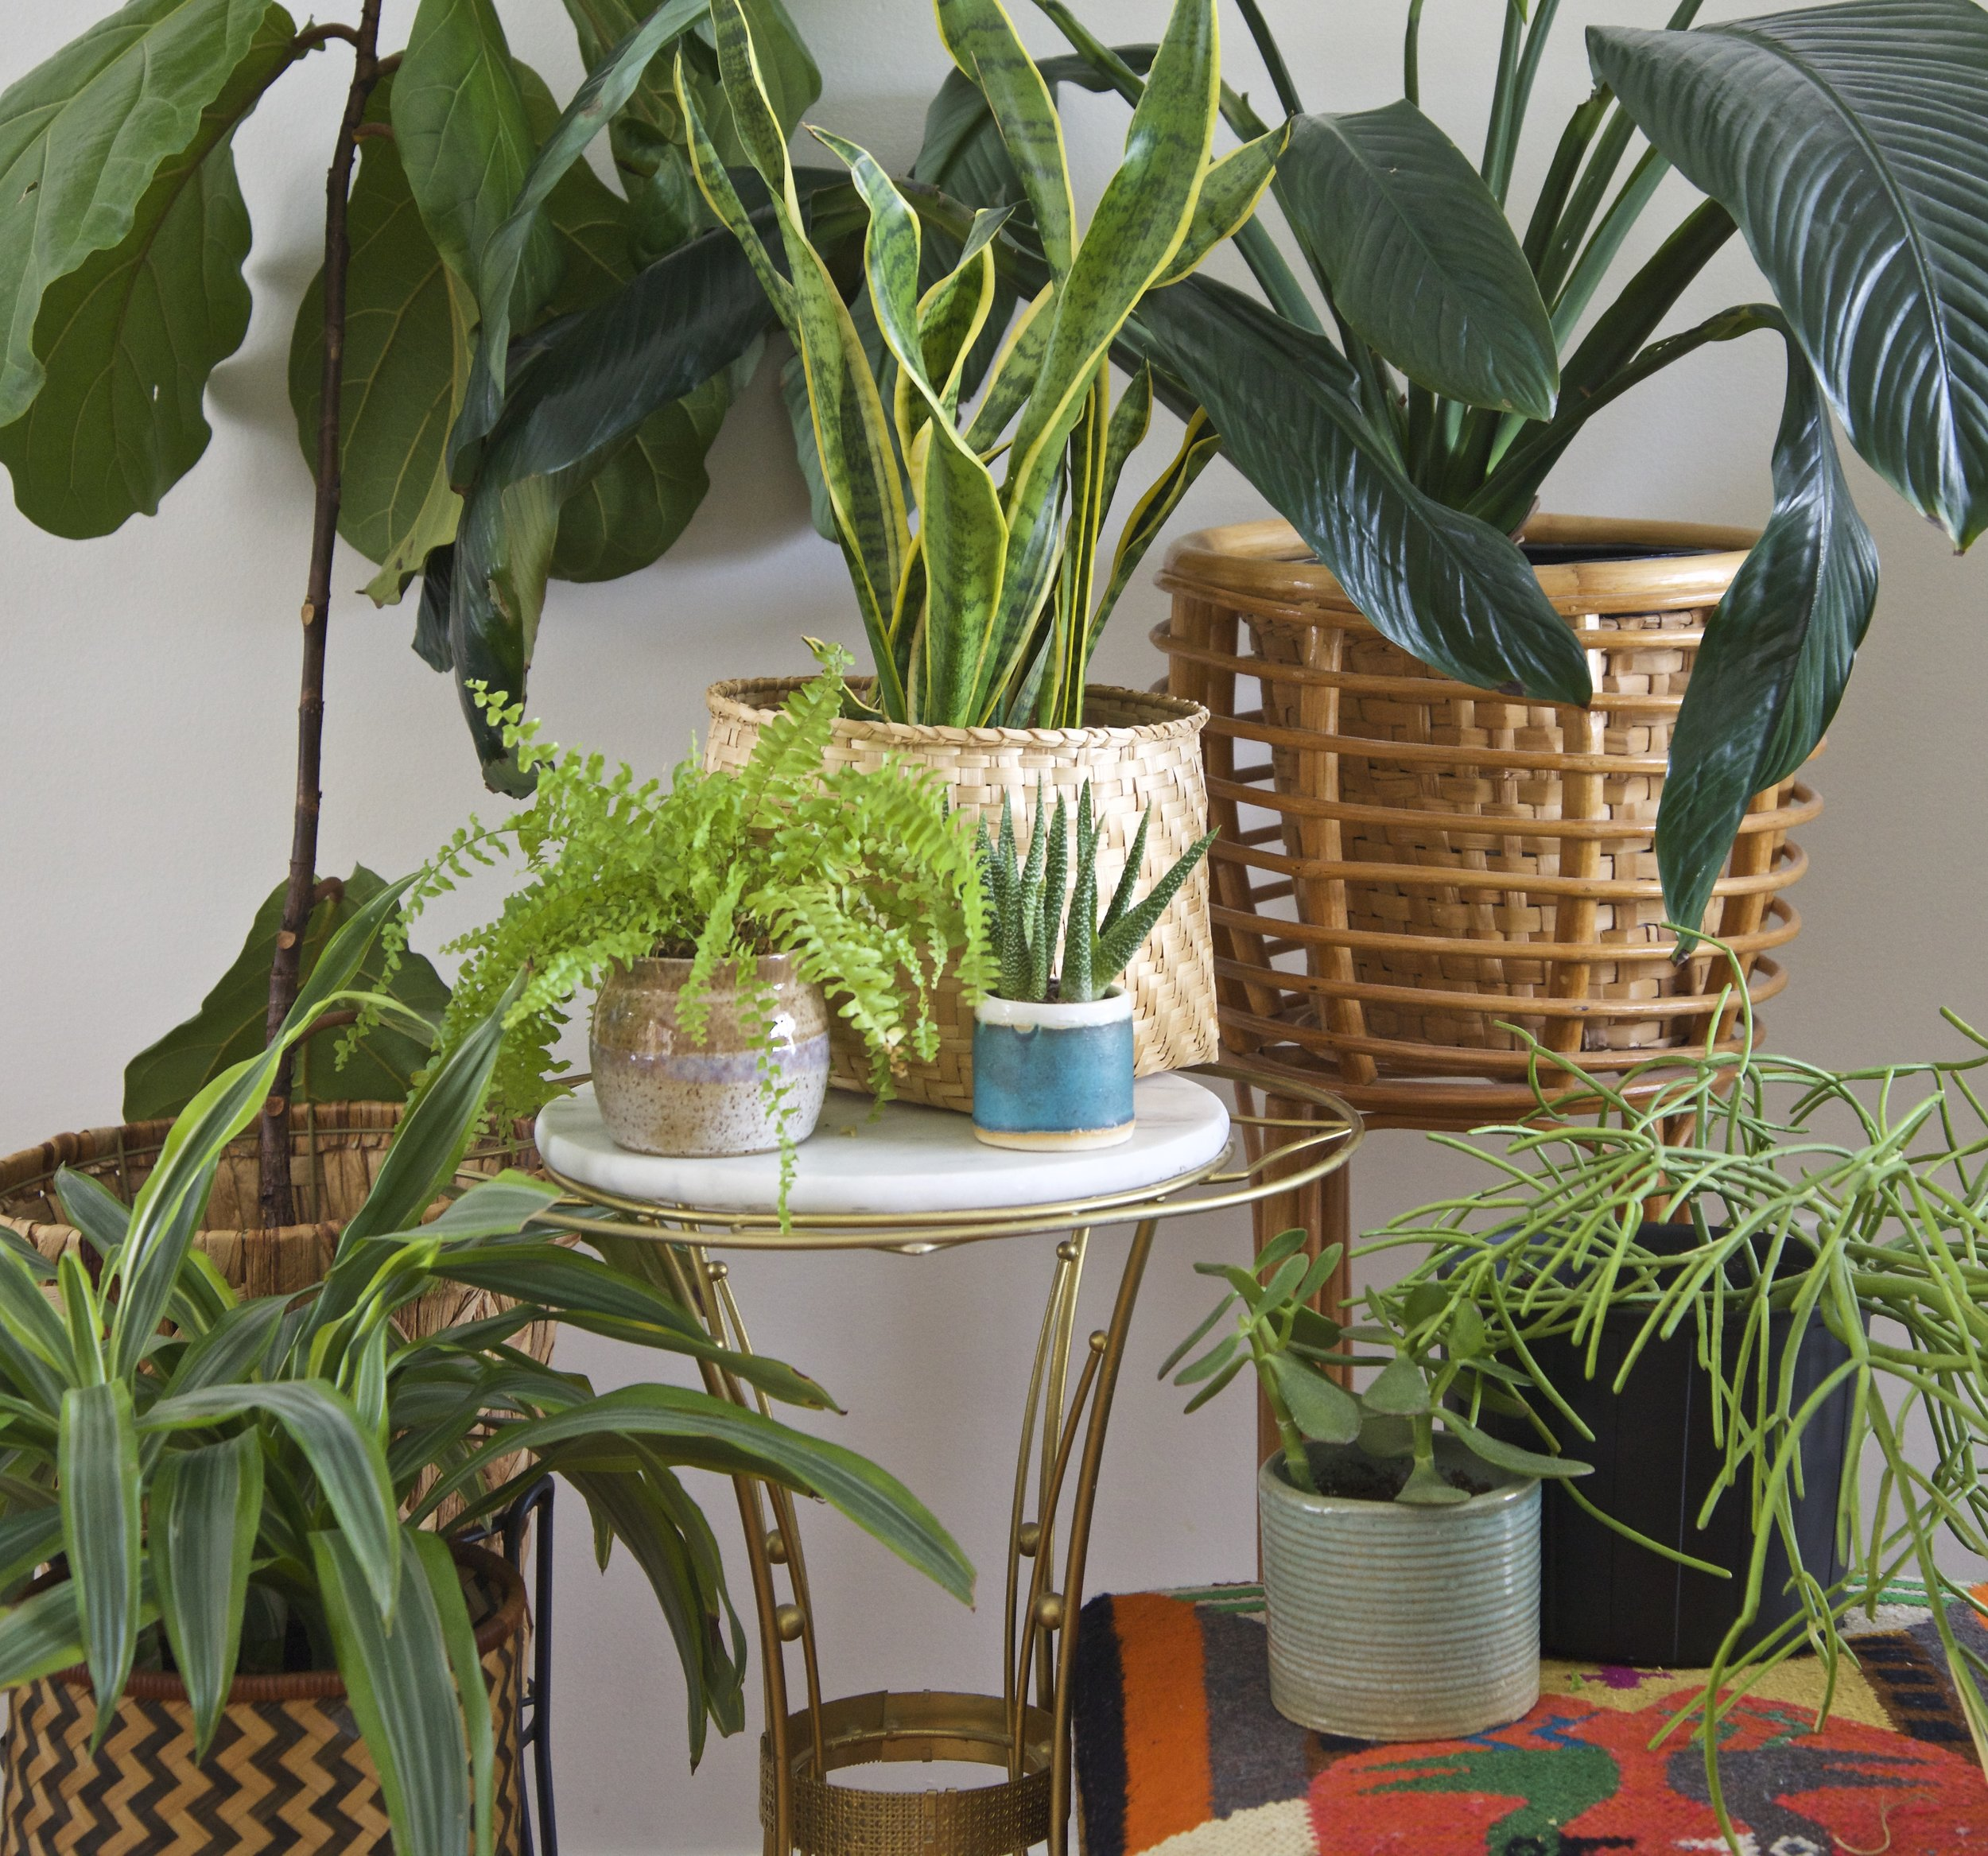 I grouped some of our houseplants together for this photo. Inspiration is every where I look!